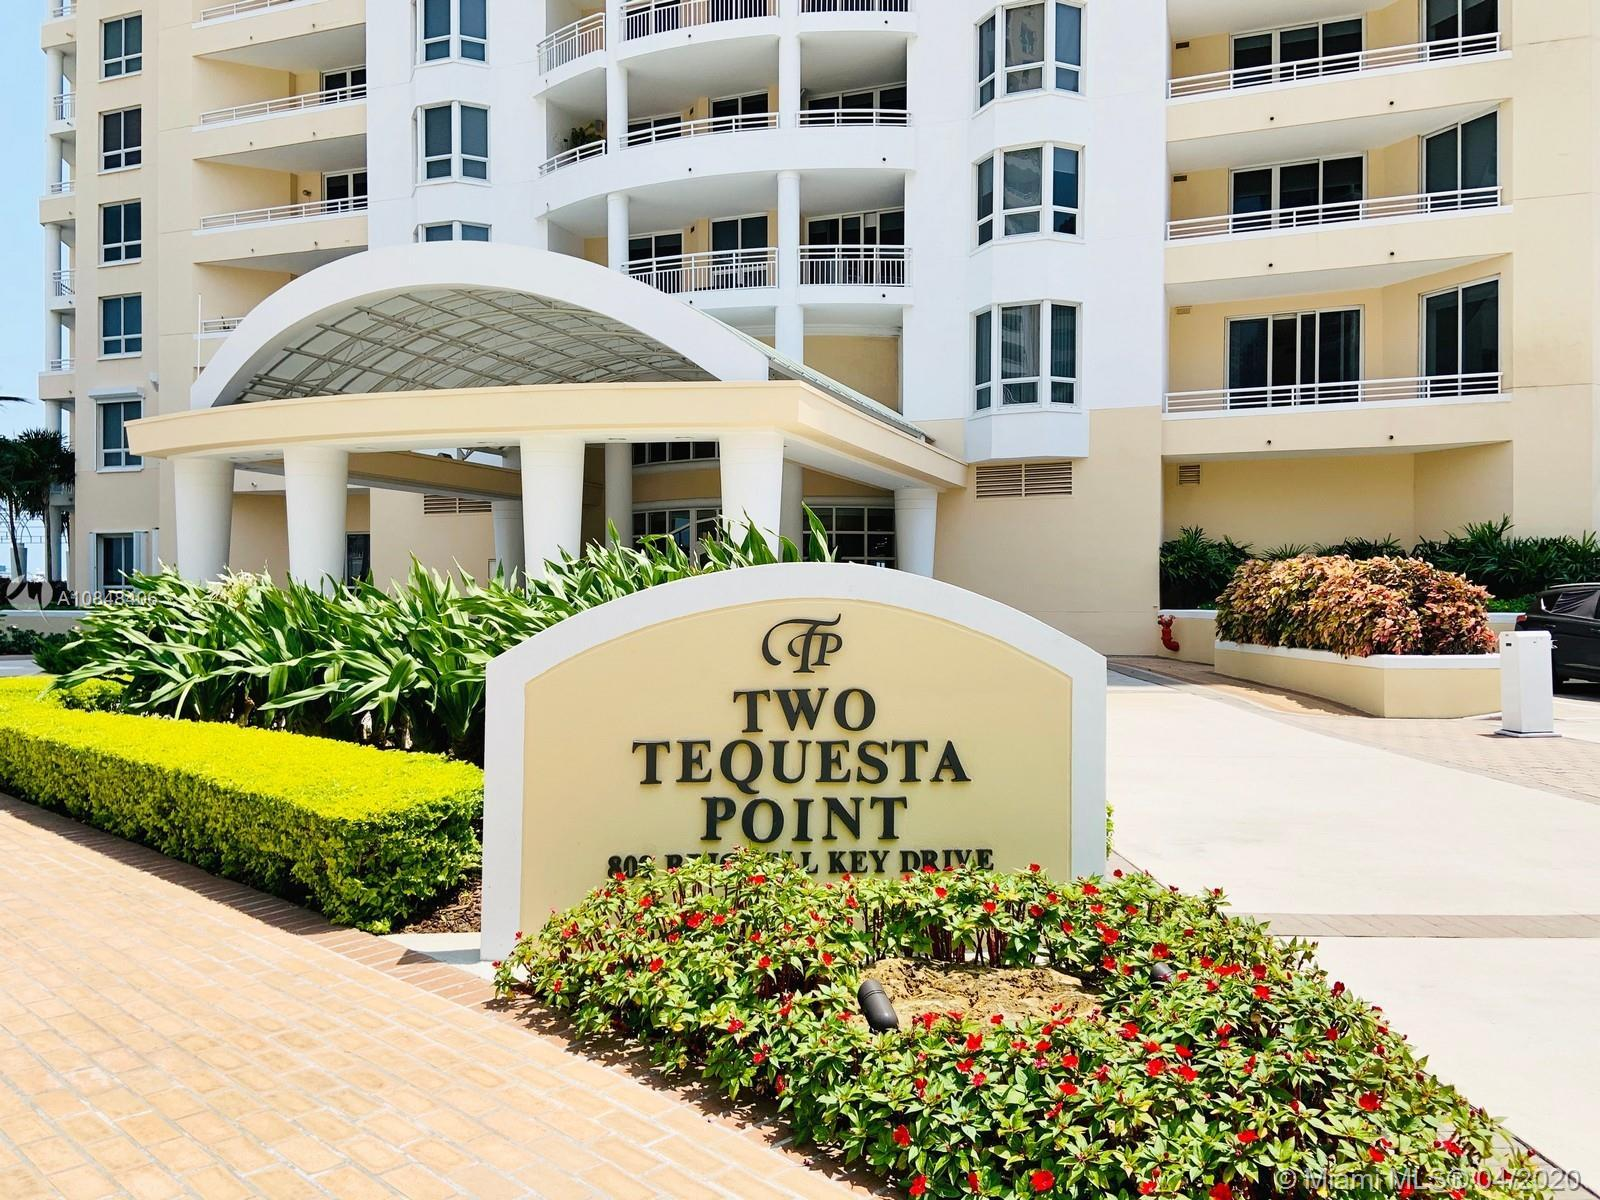 Two Tequesta Point - Condos for sale